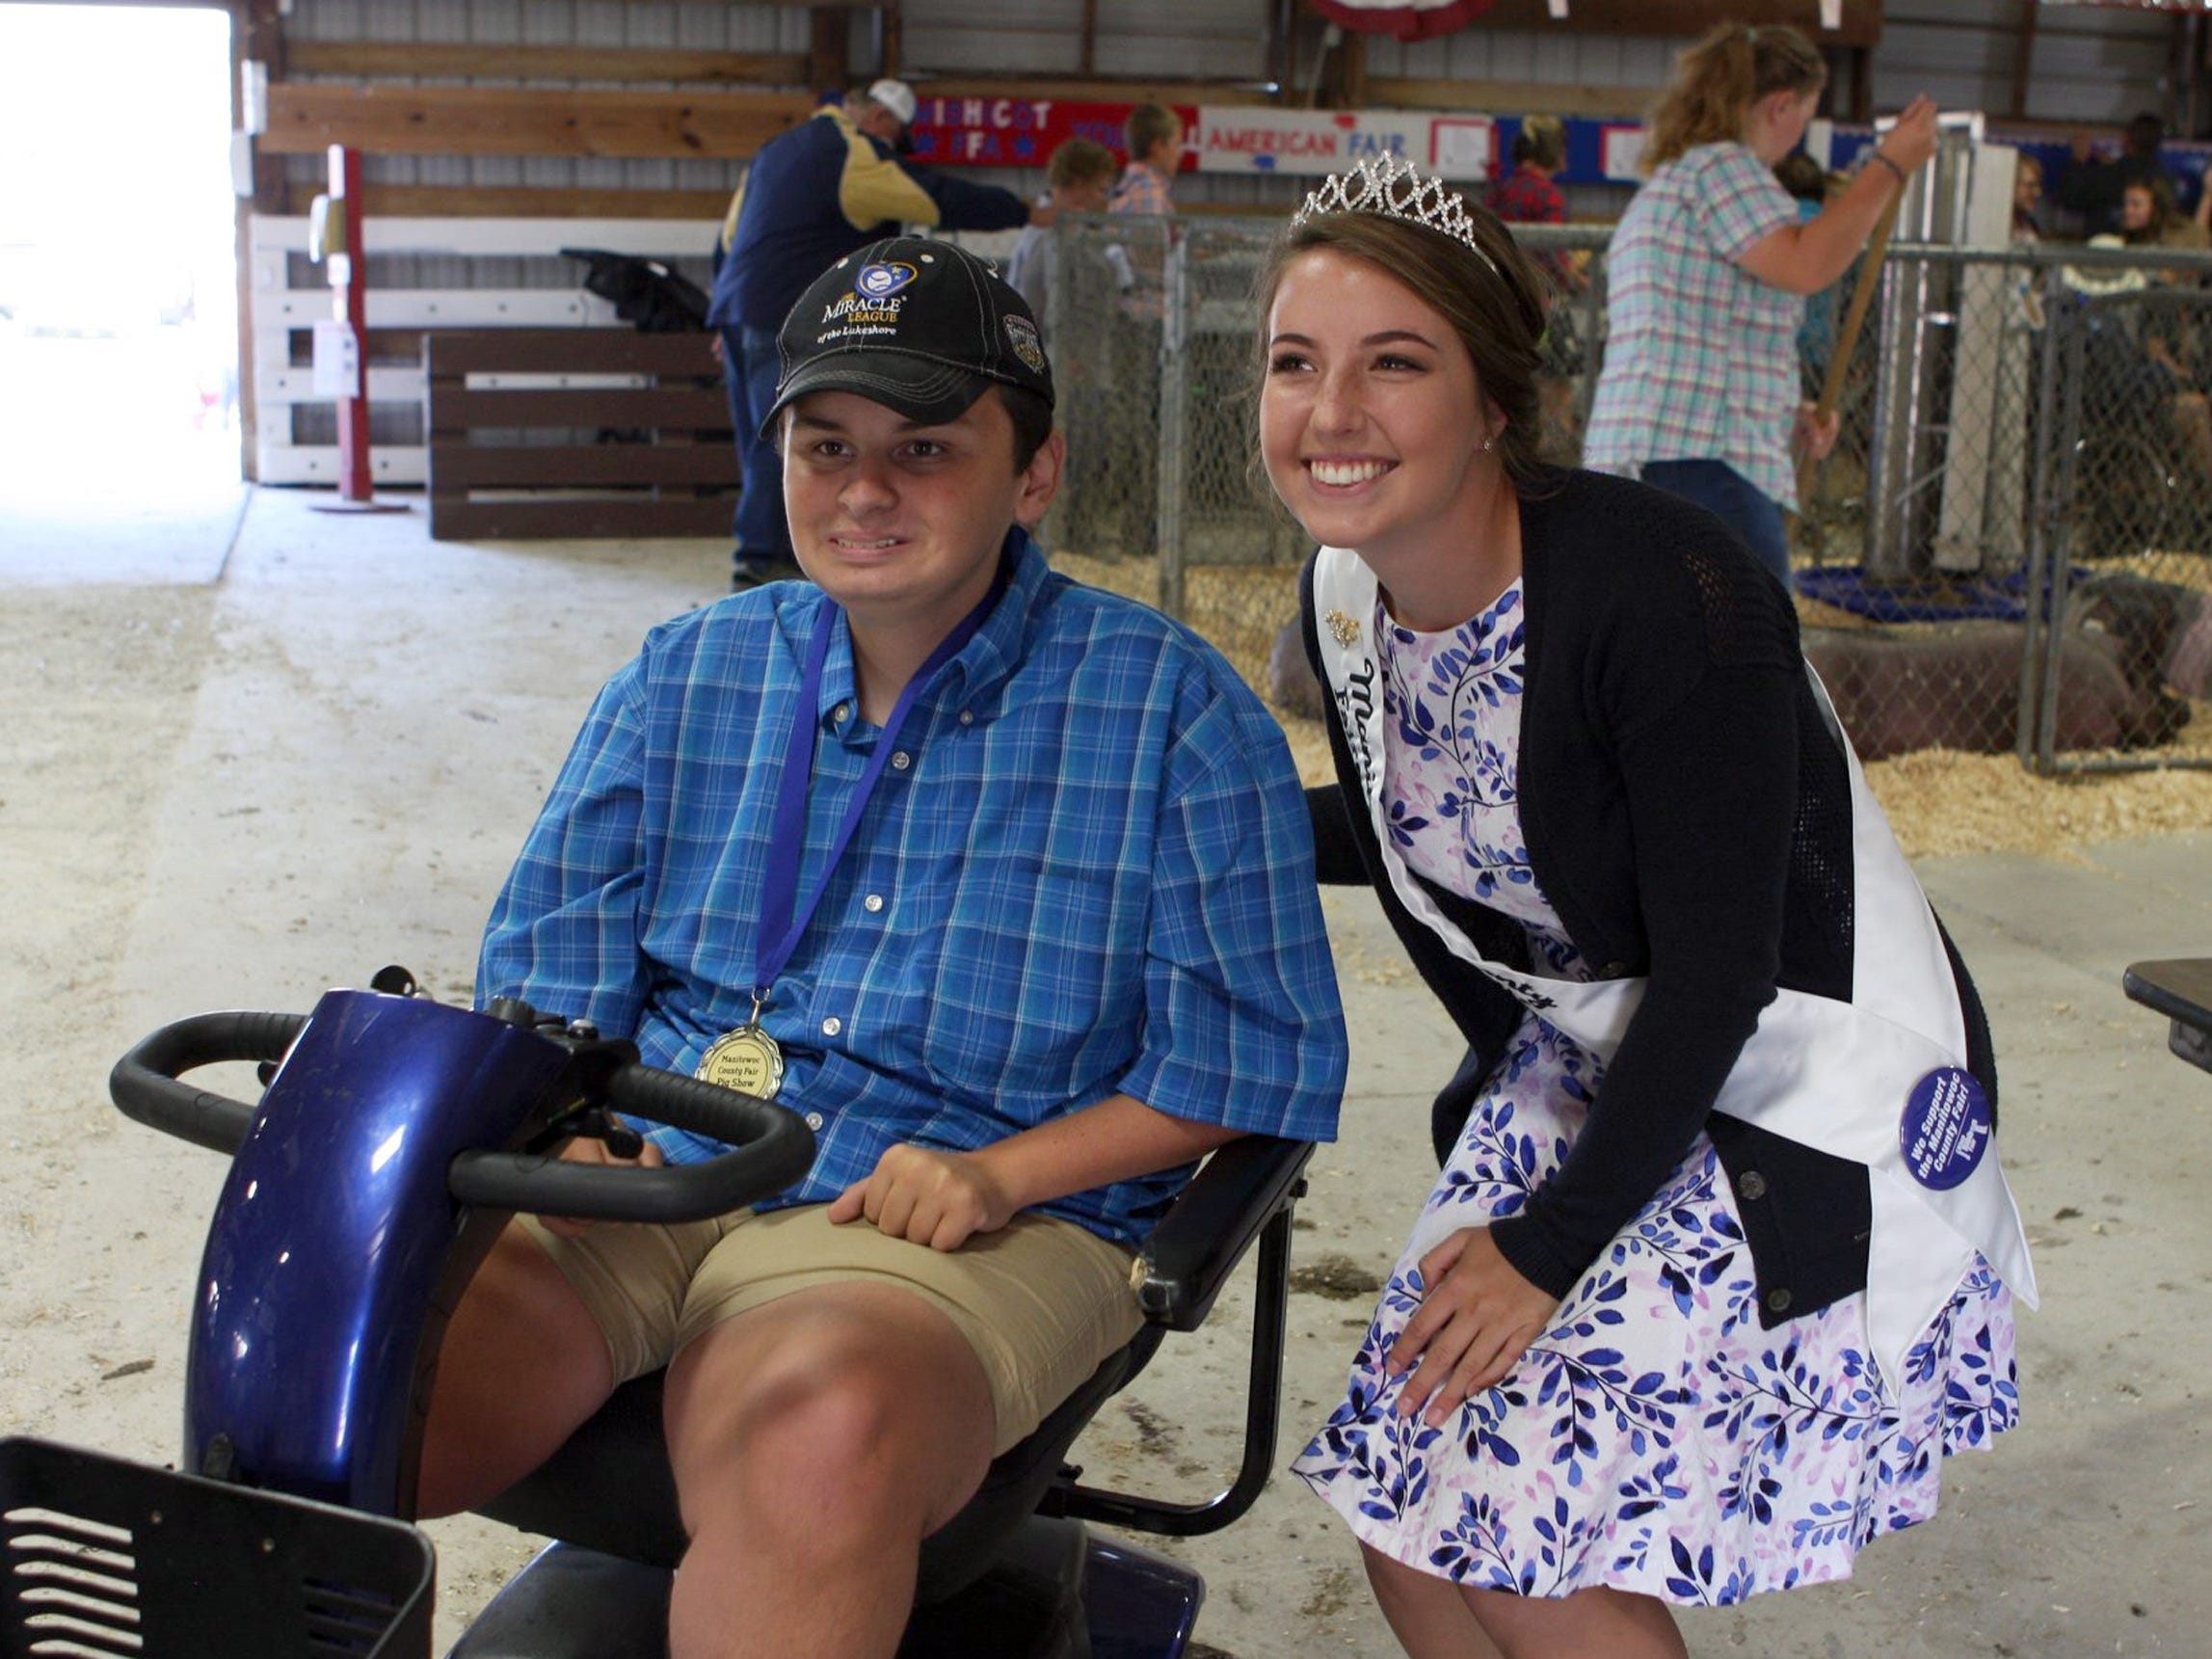 Cody Otto, 15, poses with Manitowoc County's Fairest of the Fair, Emily Hutterer, after showing his pig, Wilbur in an exhibition class at the fair.